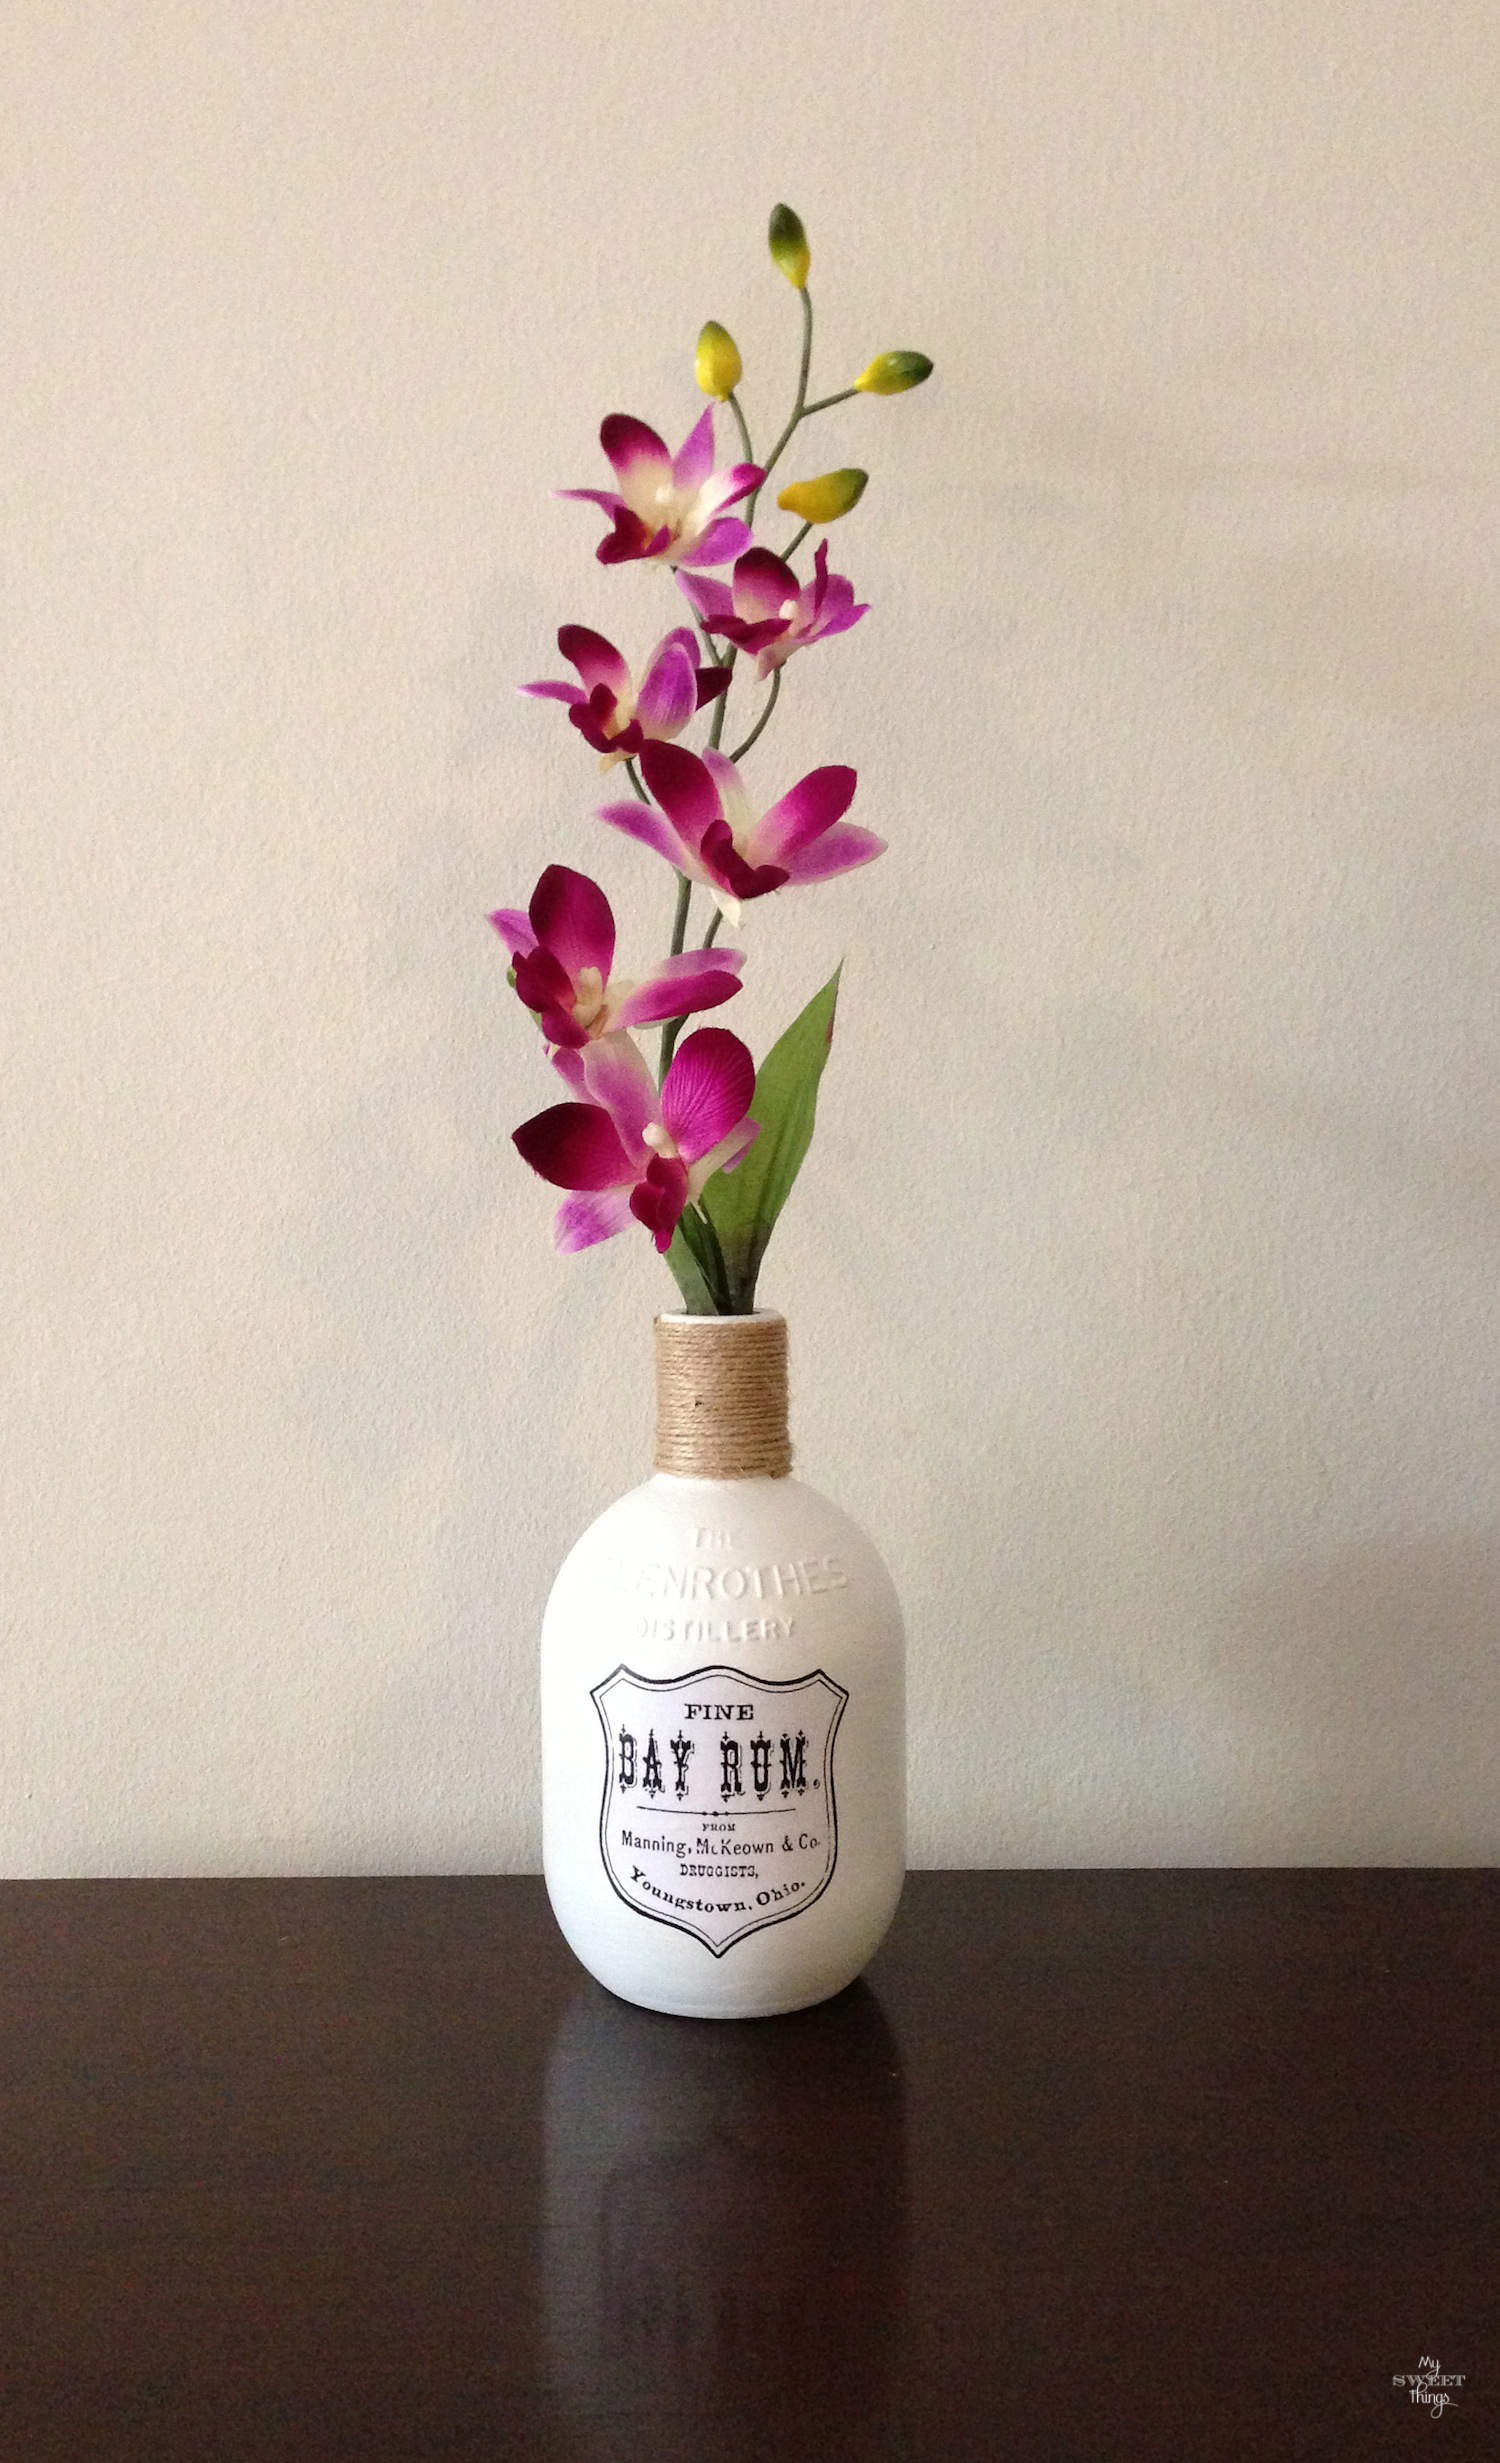 How to diy flower vases on a budget my sweet things empty bottled upcycled into a flower vase jarrn 22bay rum22 reviewsmspy